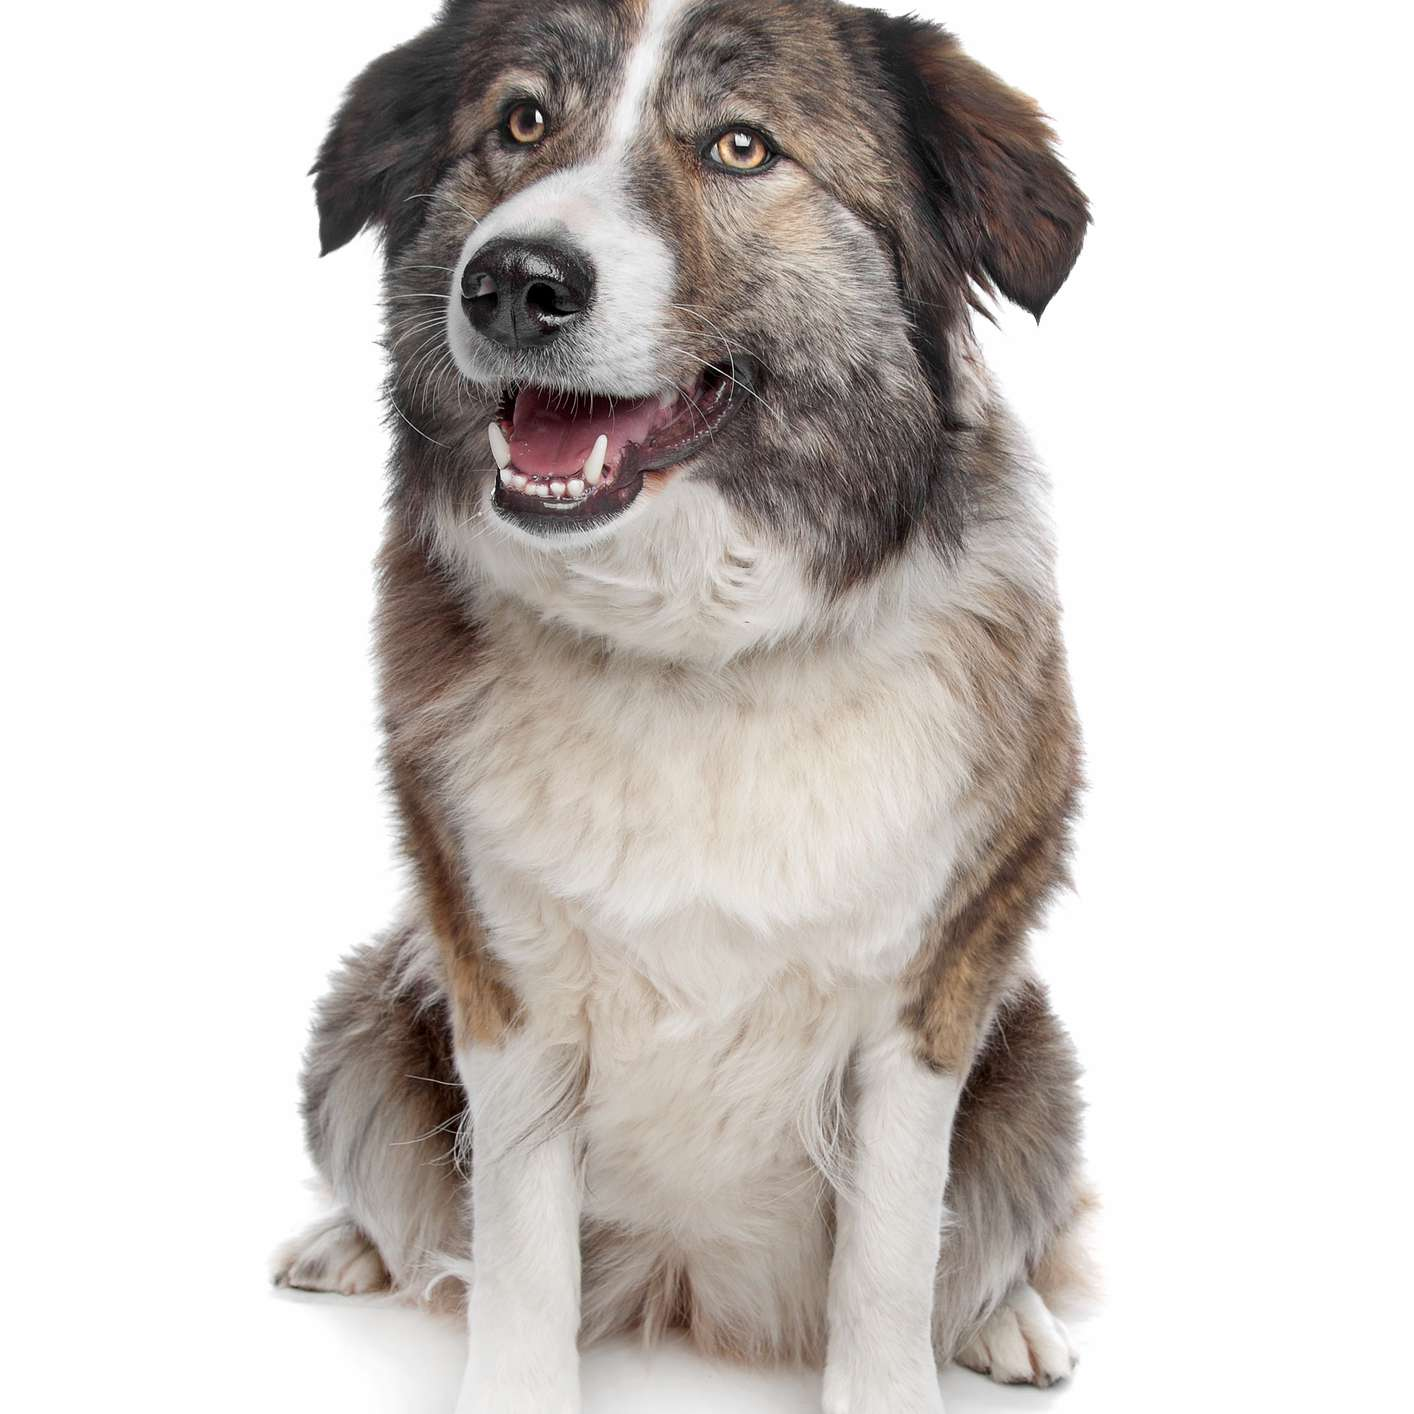 Aidi dog with white markings sitting with its mouth open in front of a white background.